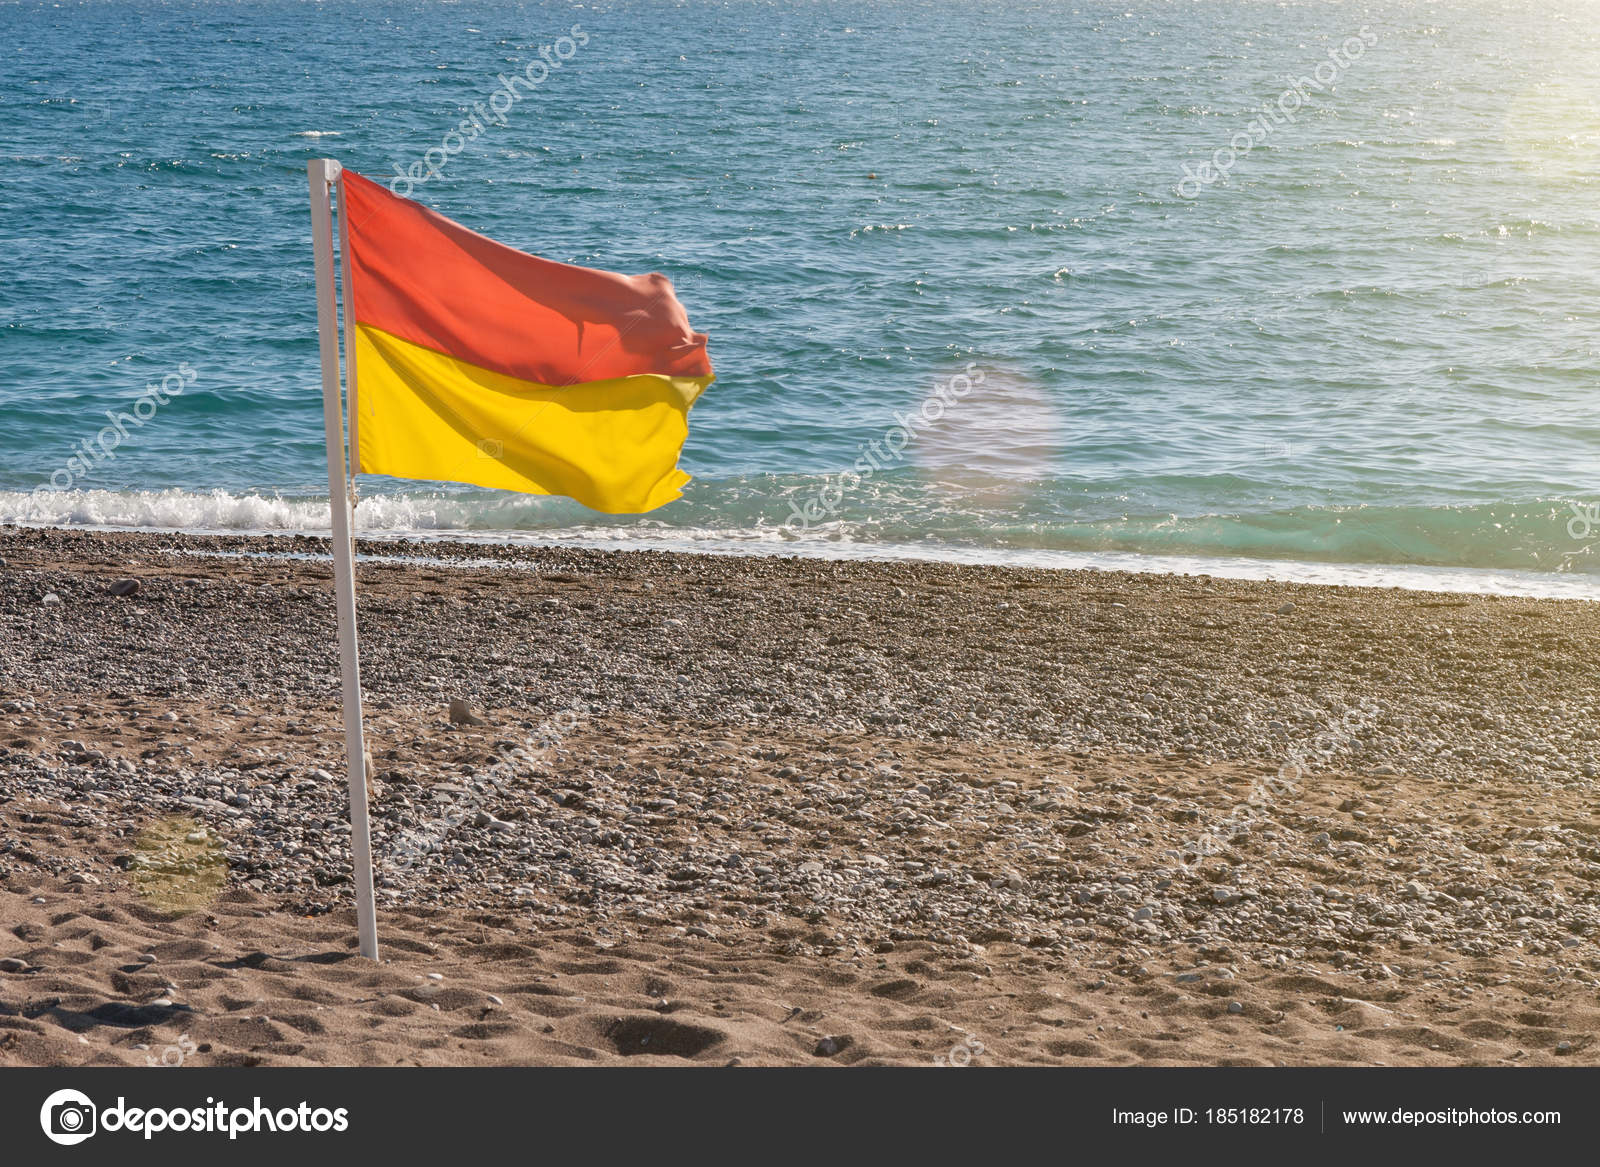 Surf Conditions Yellow Red Flag Beach — Stock Photo